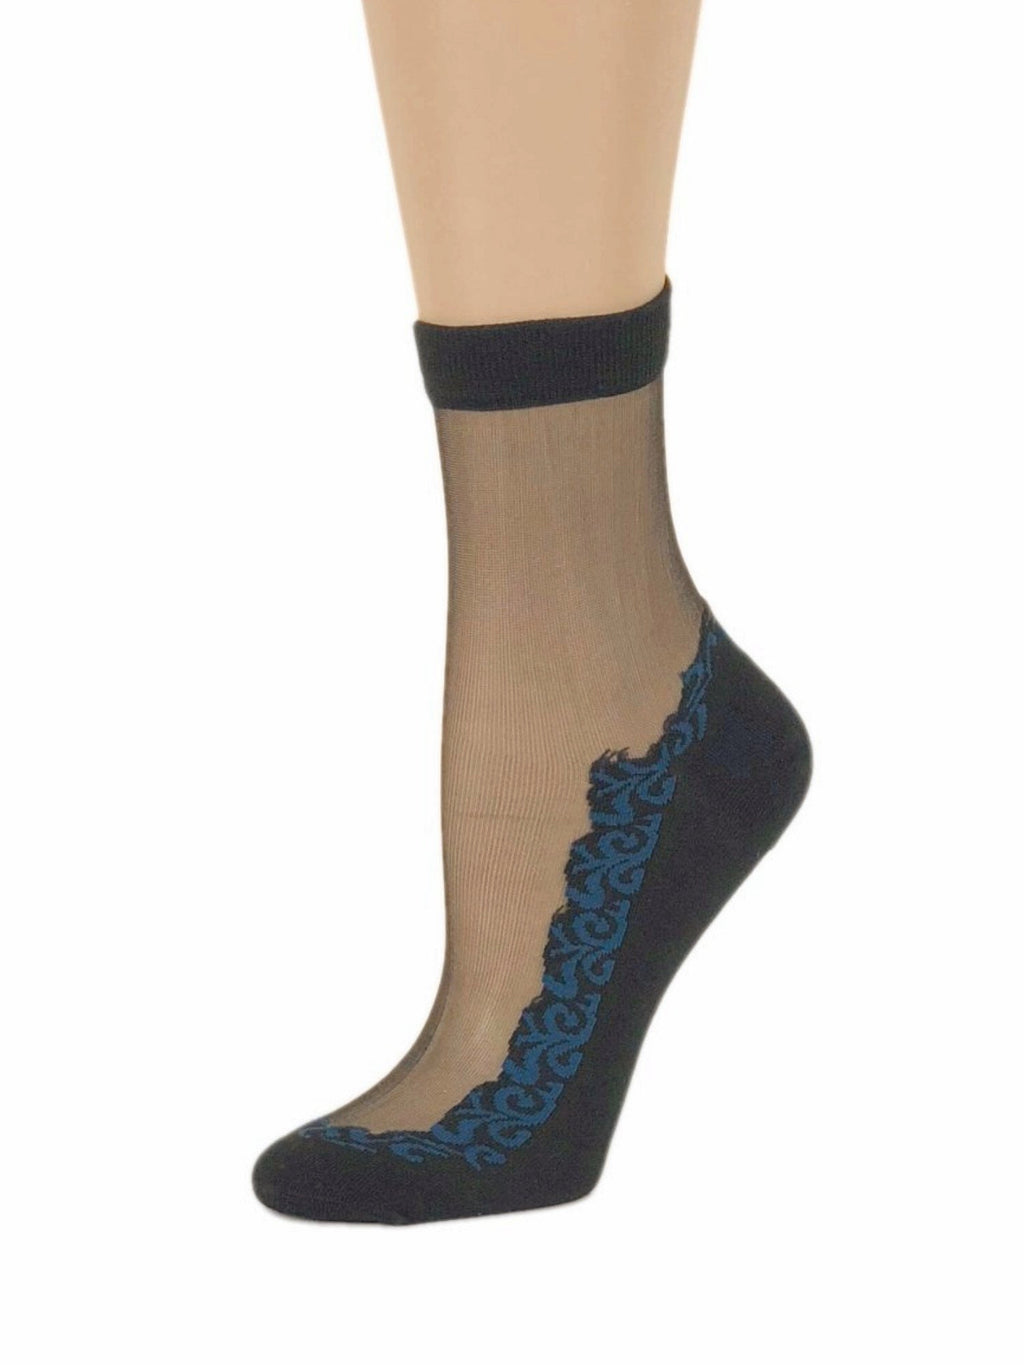 Sequence Blue Leaf Sheer Socks - Global Trendz Fashion®